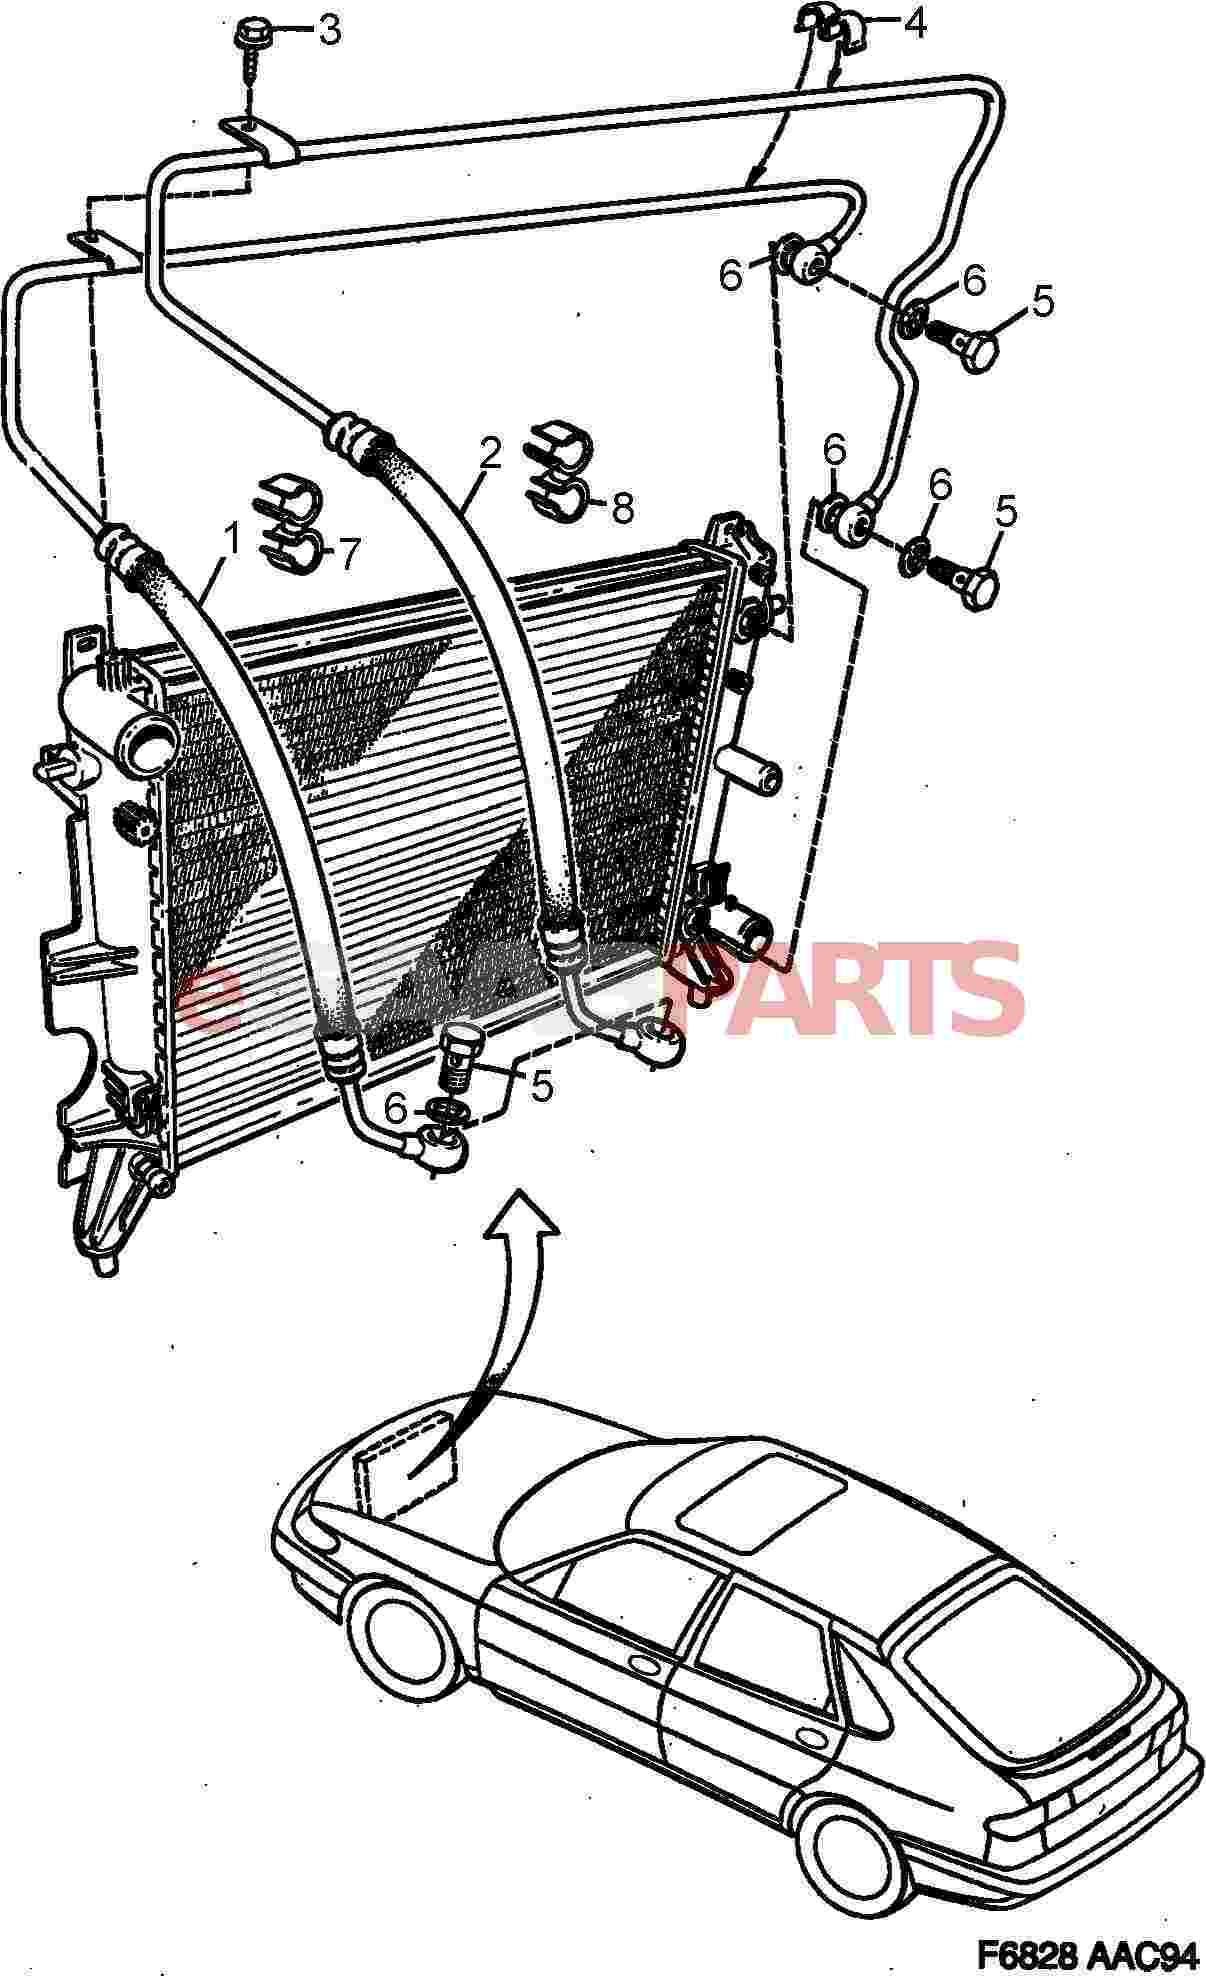 saab 900 transmission part diagram